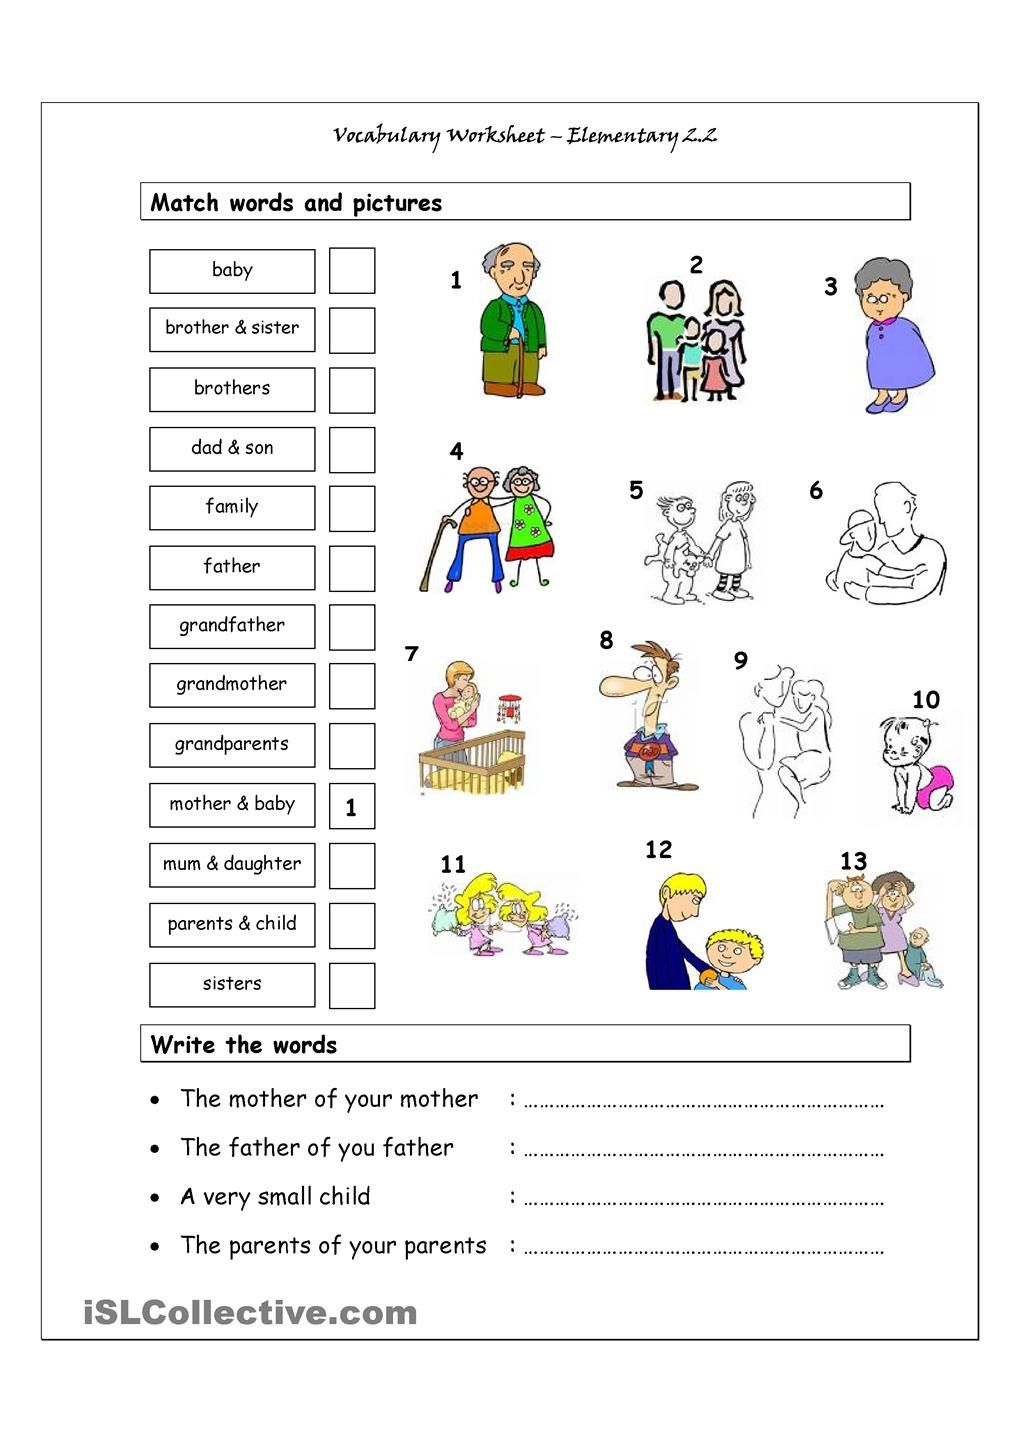 vocabulary matching worksheet elementary 2 2 family esl pinterest worksheets english. Black Bedroom Furniture Sets. Home Design Ideas